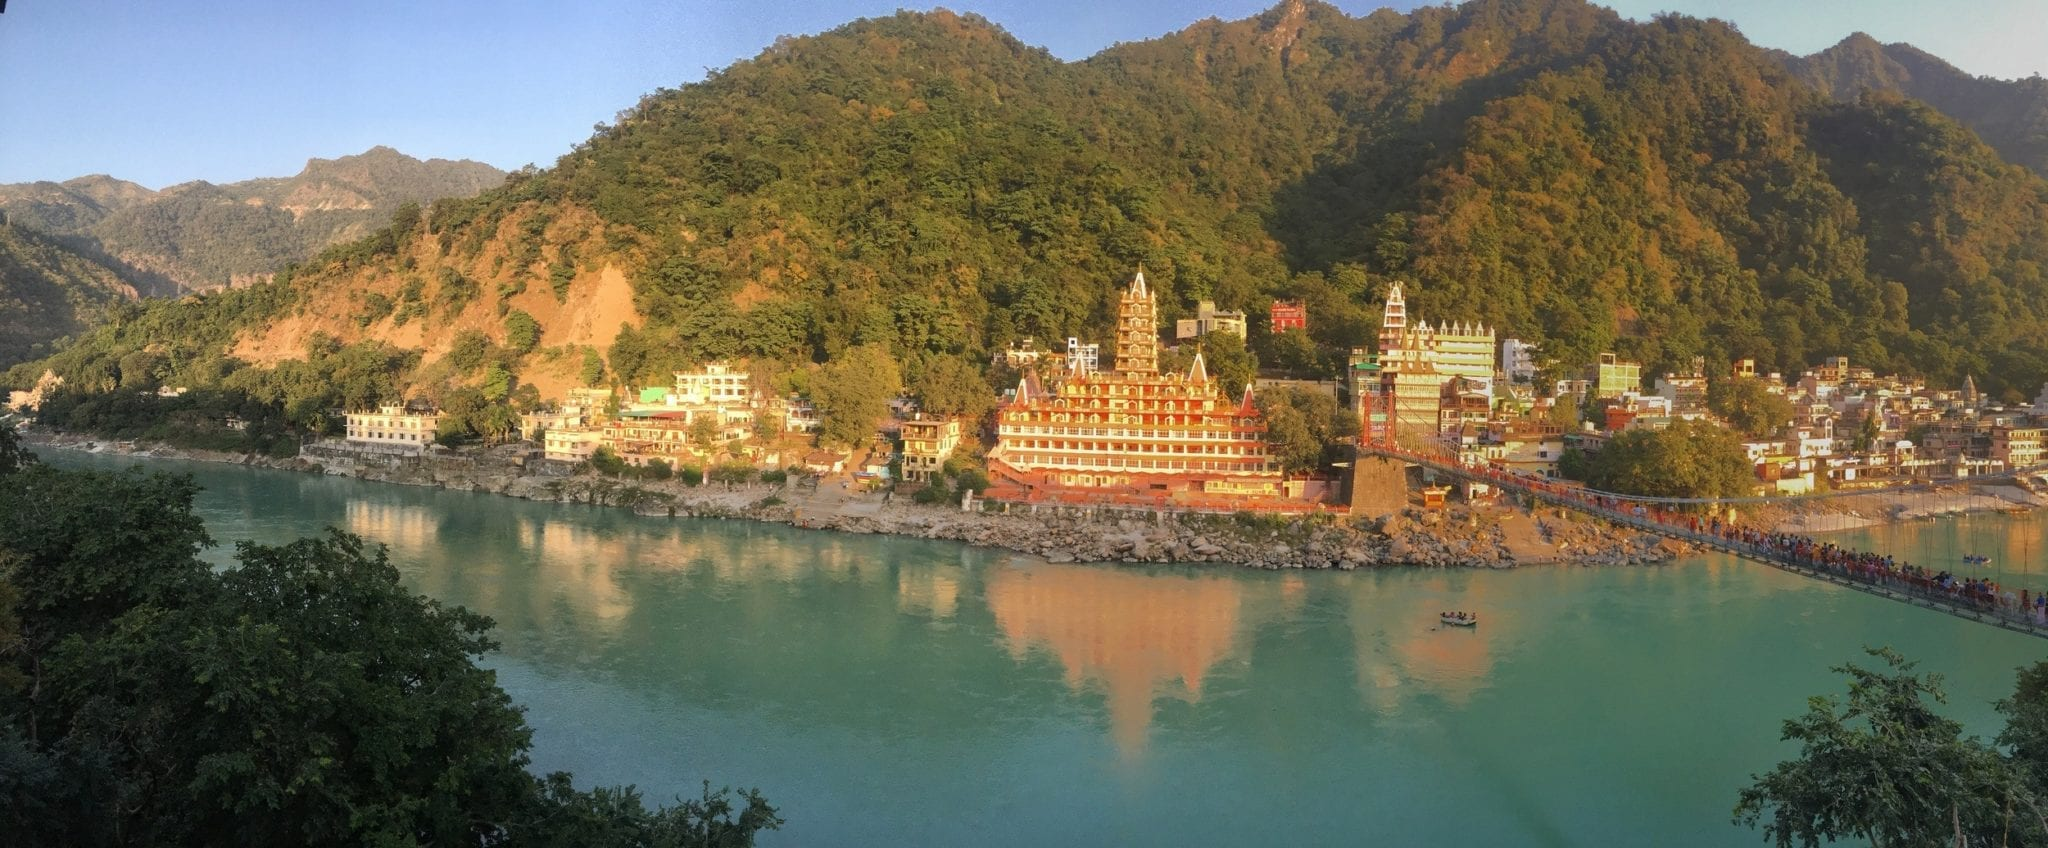 Orange temples nestled into green hills on a turquoise lake in Rishikesh, India.